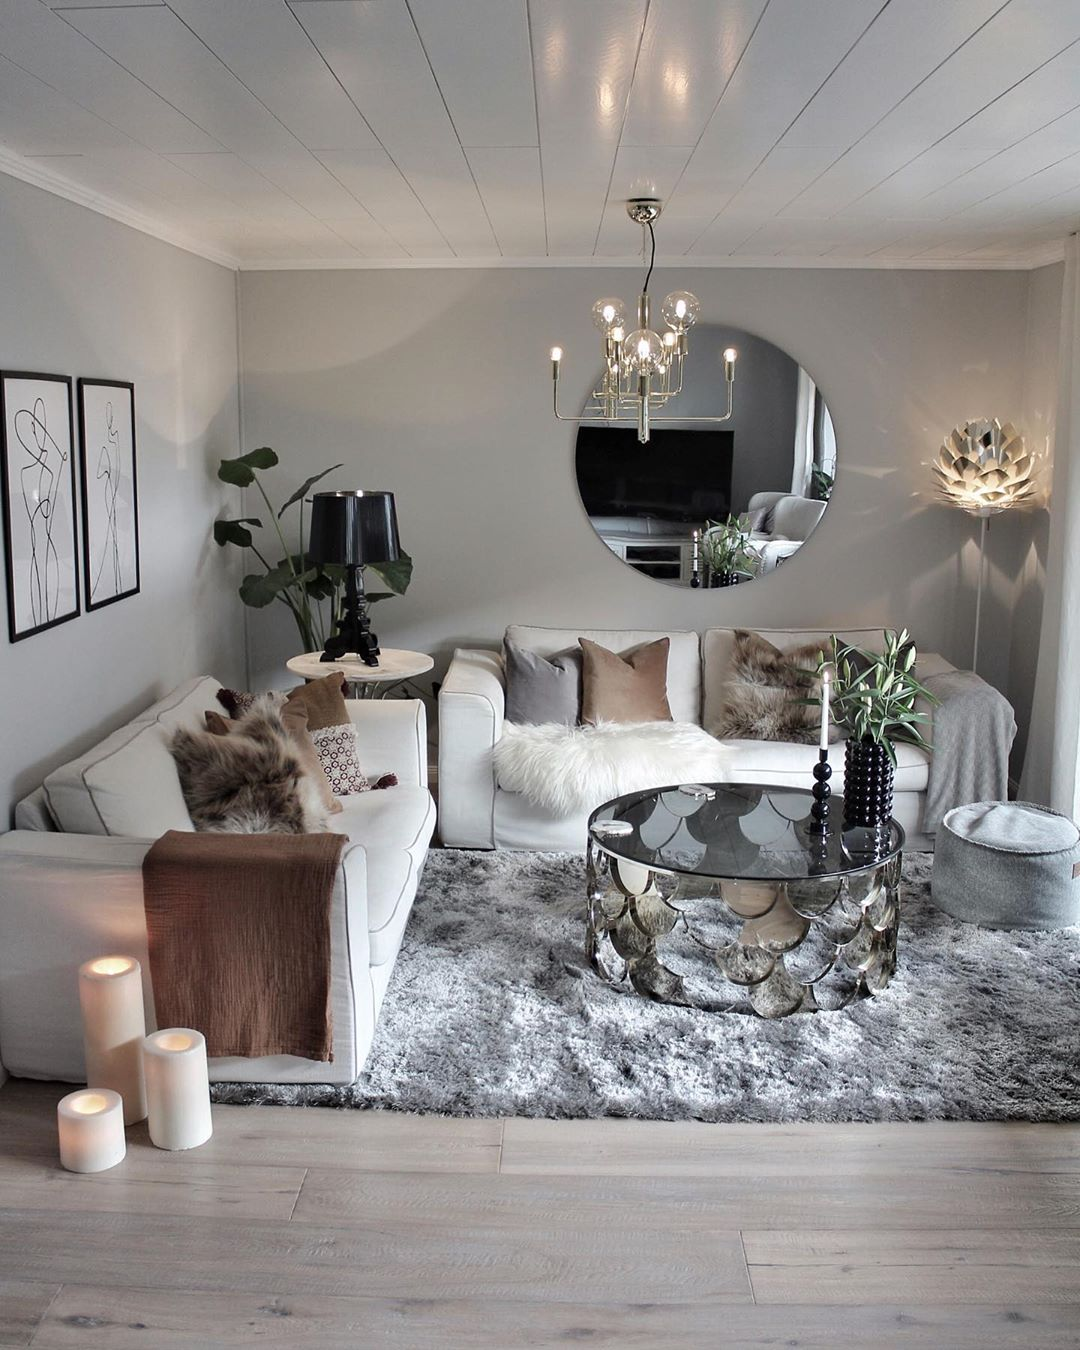 50 Lovely Living Room Design Ideas for 2020 - Do It Before Me on Small Living Room Decor Ideas  id=76808